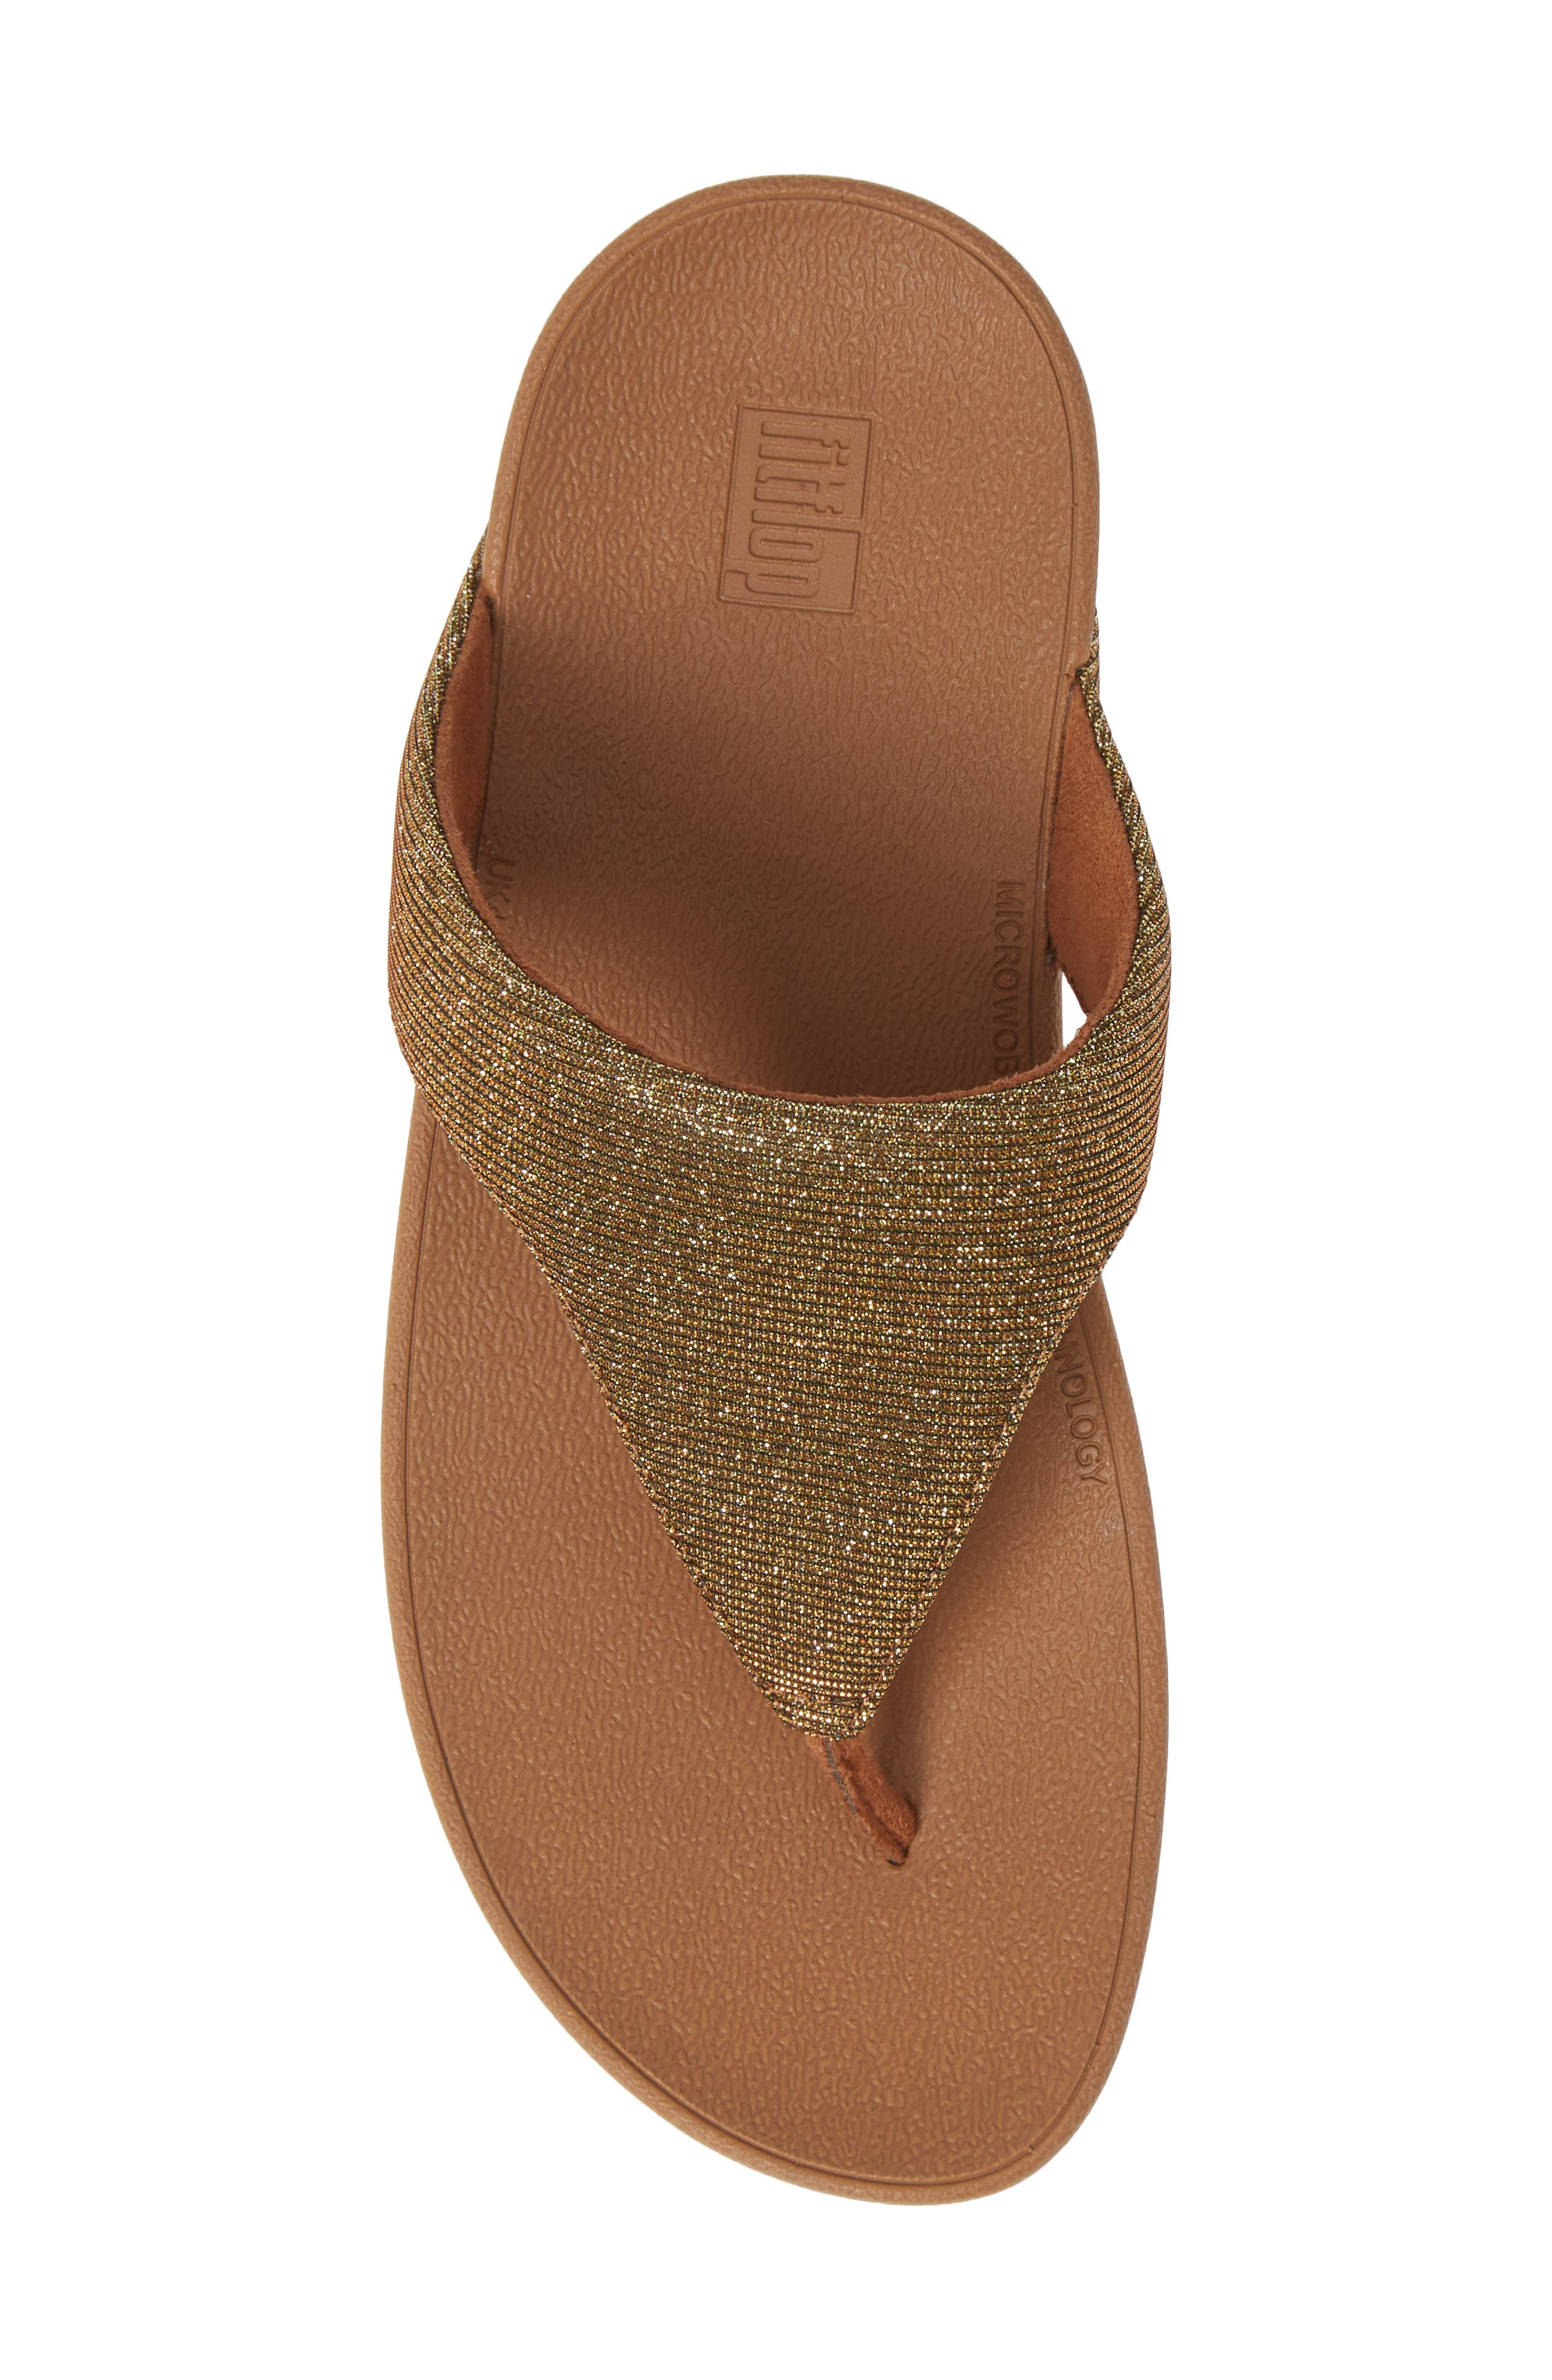 FITFLOP, Lottie Glitzy Wedge Flip Flop, Alternate thumbnail 5, color, ARTISAN GOLD